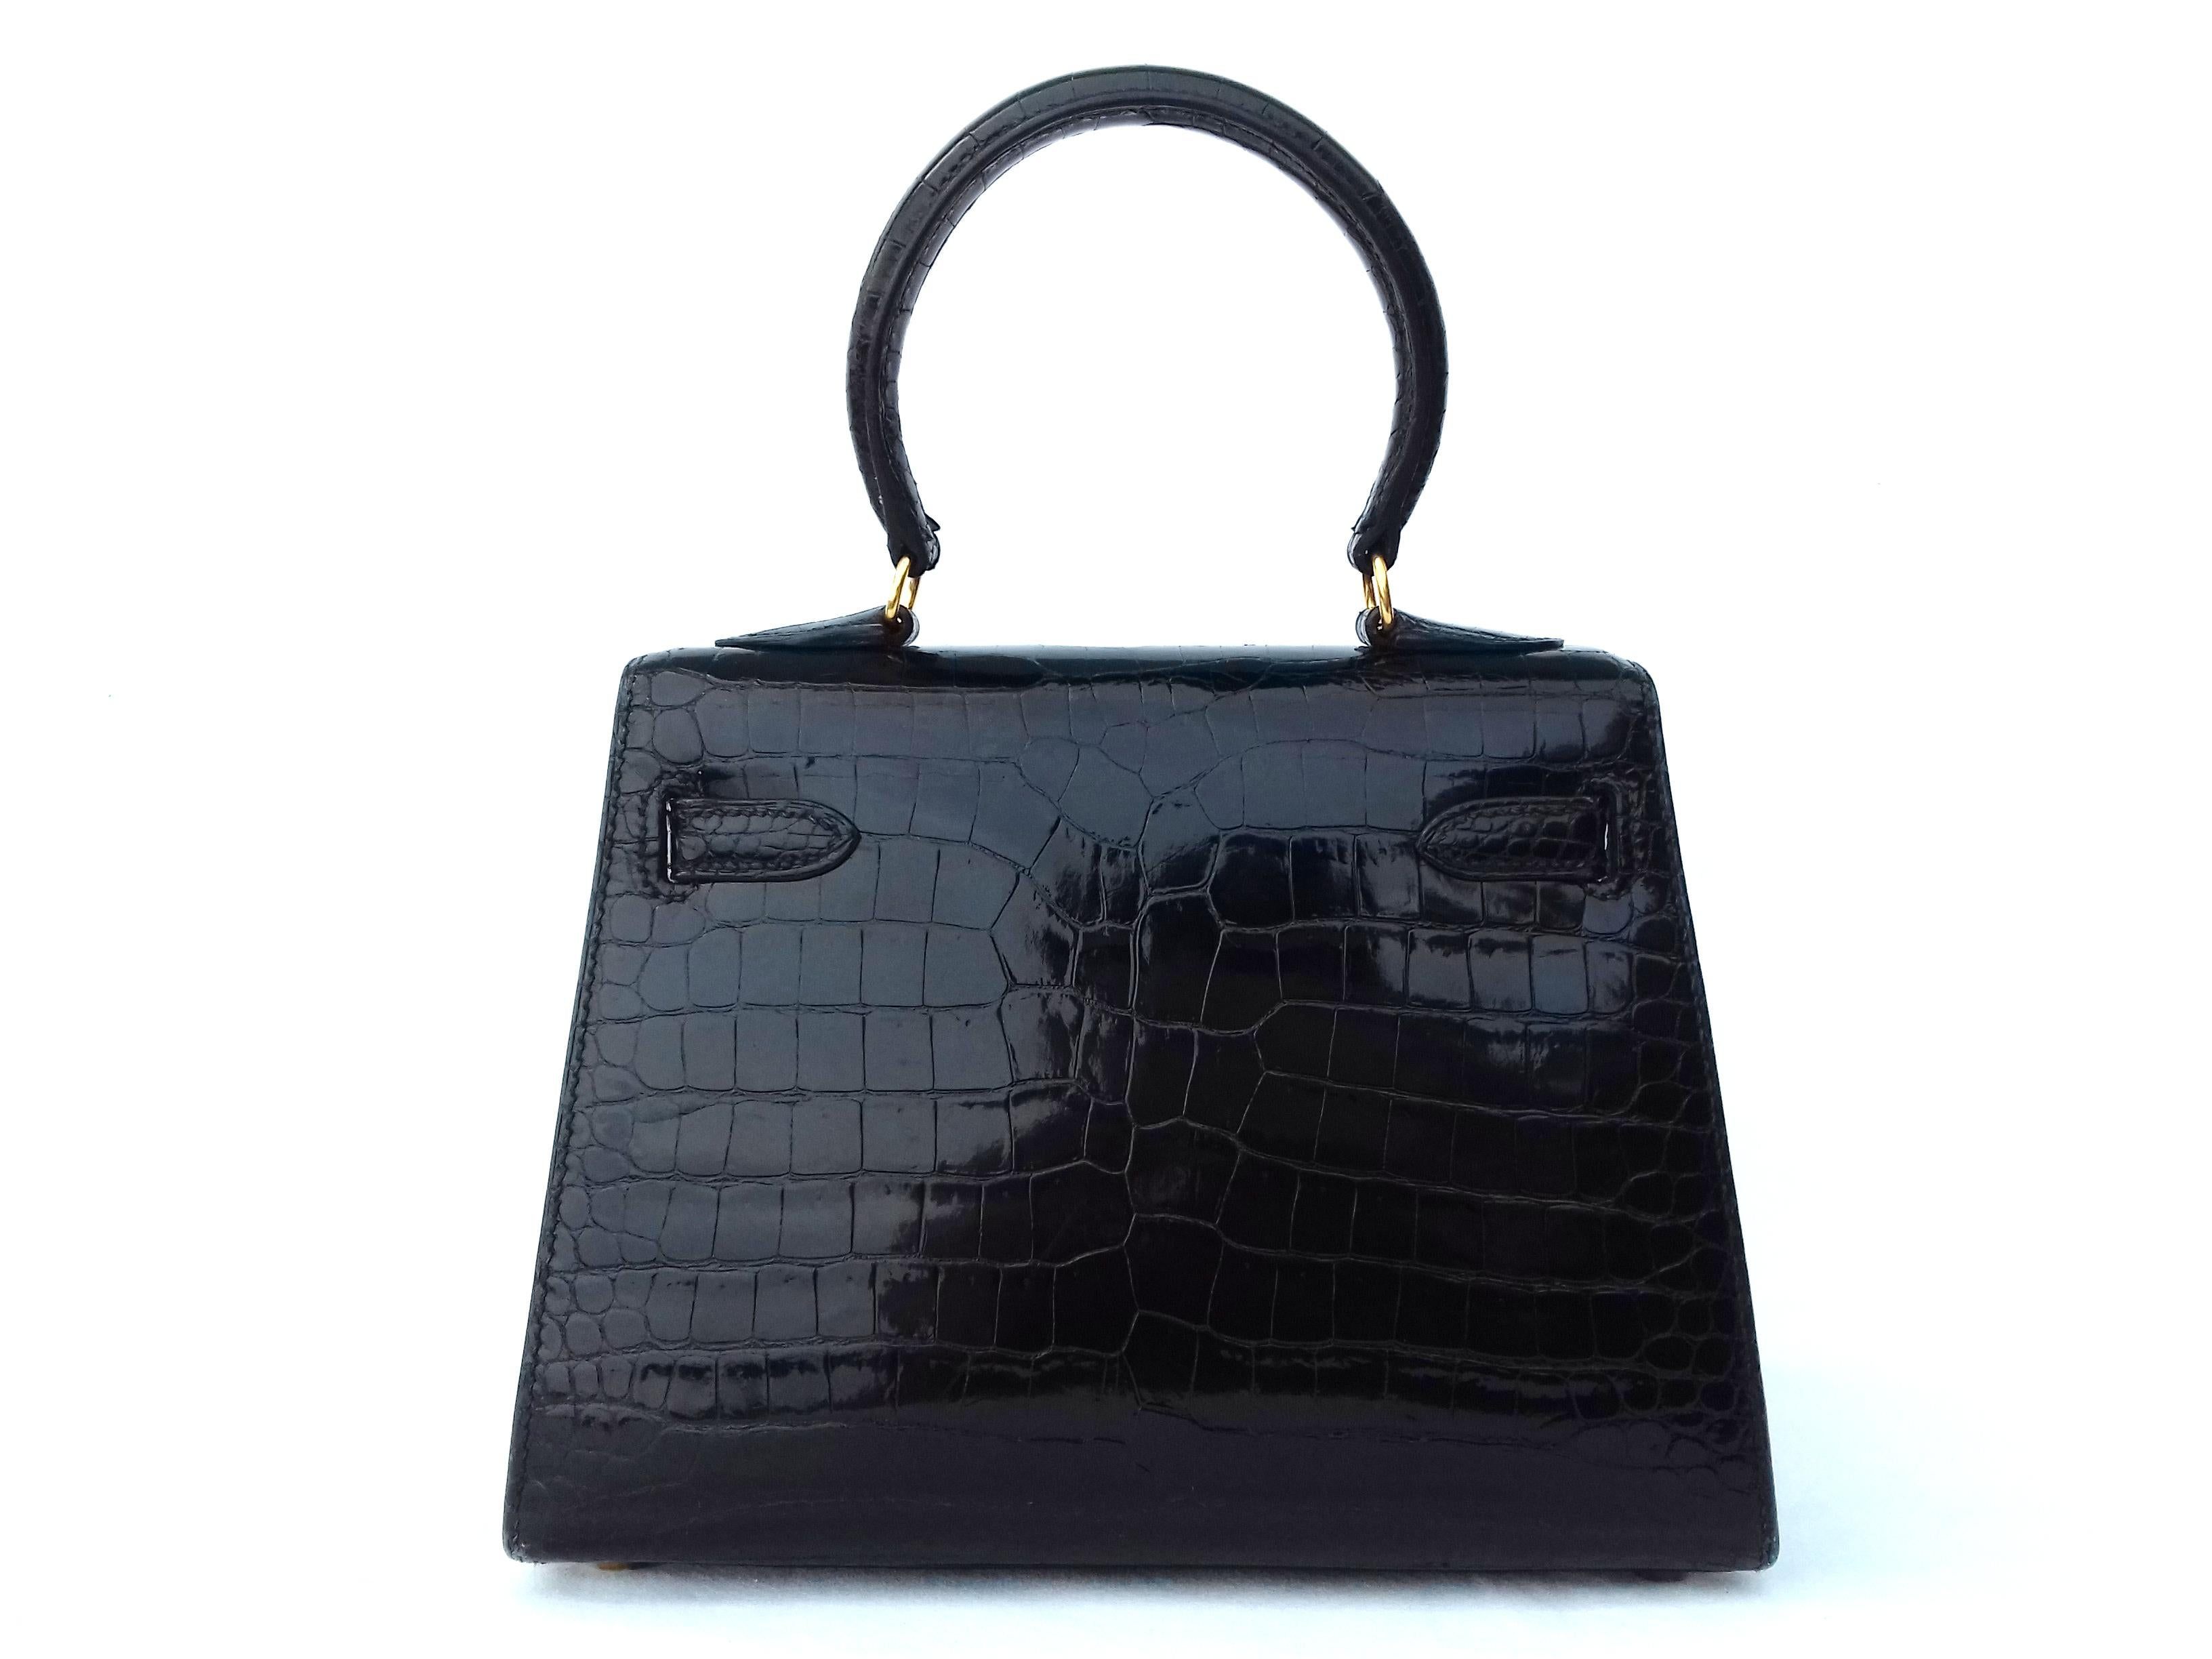 a73c96c6a0 Hermès Mini Kelly Vintage Bag Sellier Black Croco Crocodile Ghw 20 cm RARE  For Sale at 1stdibs